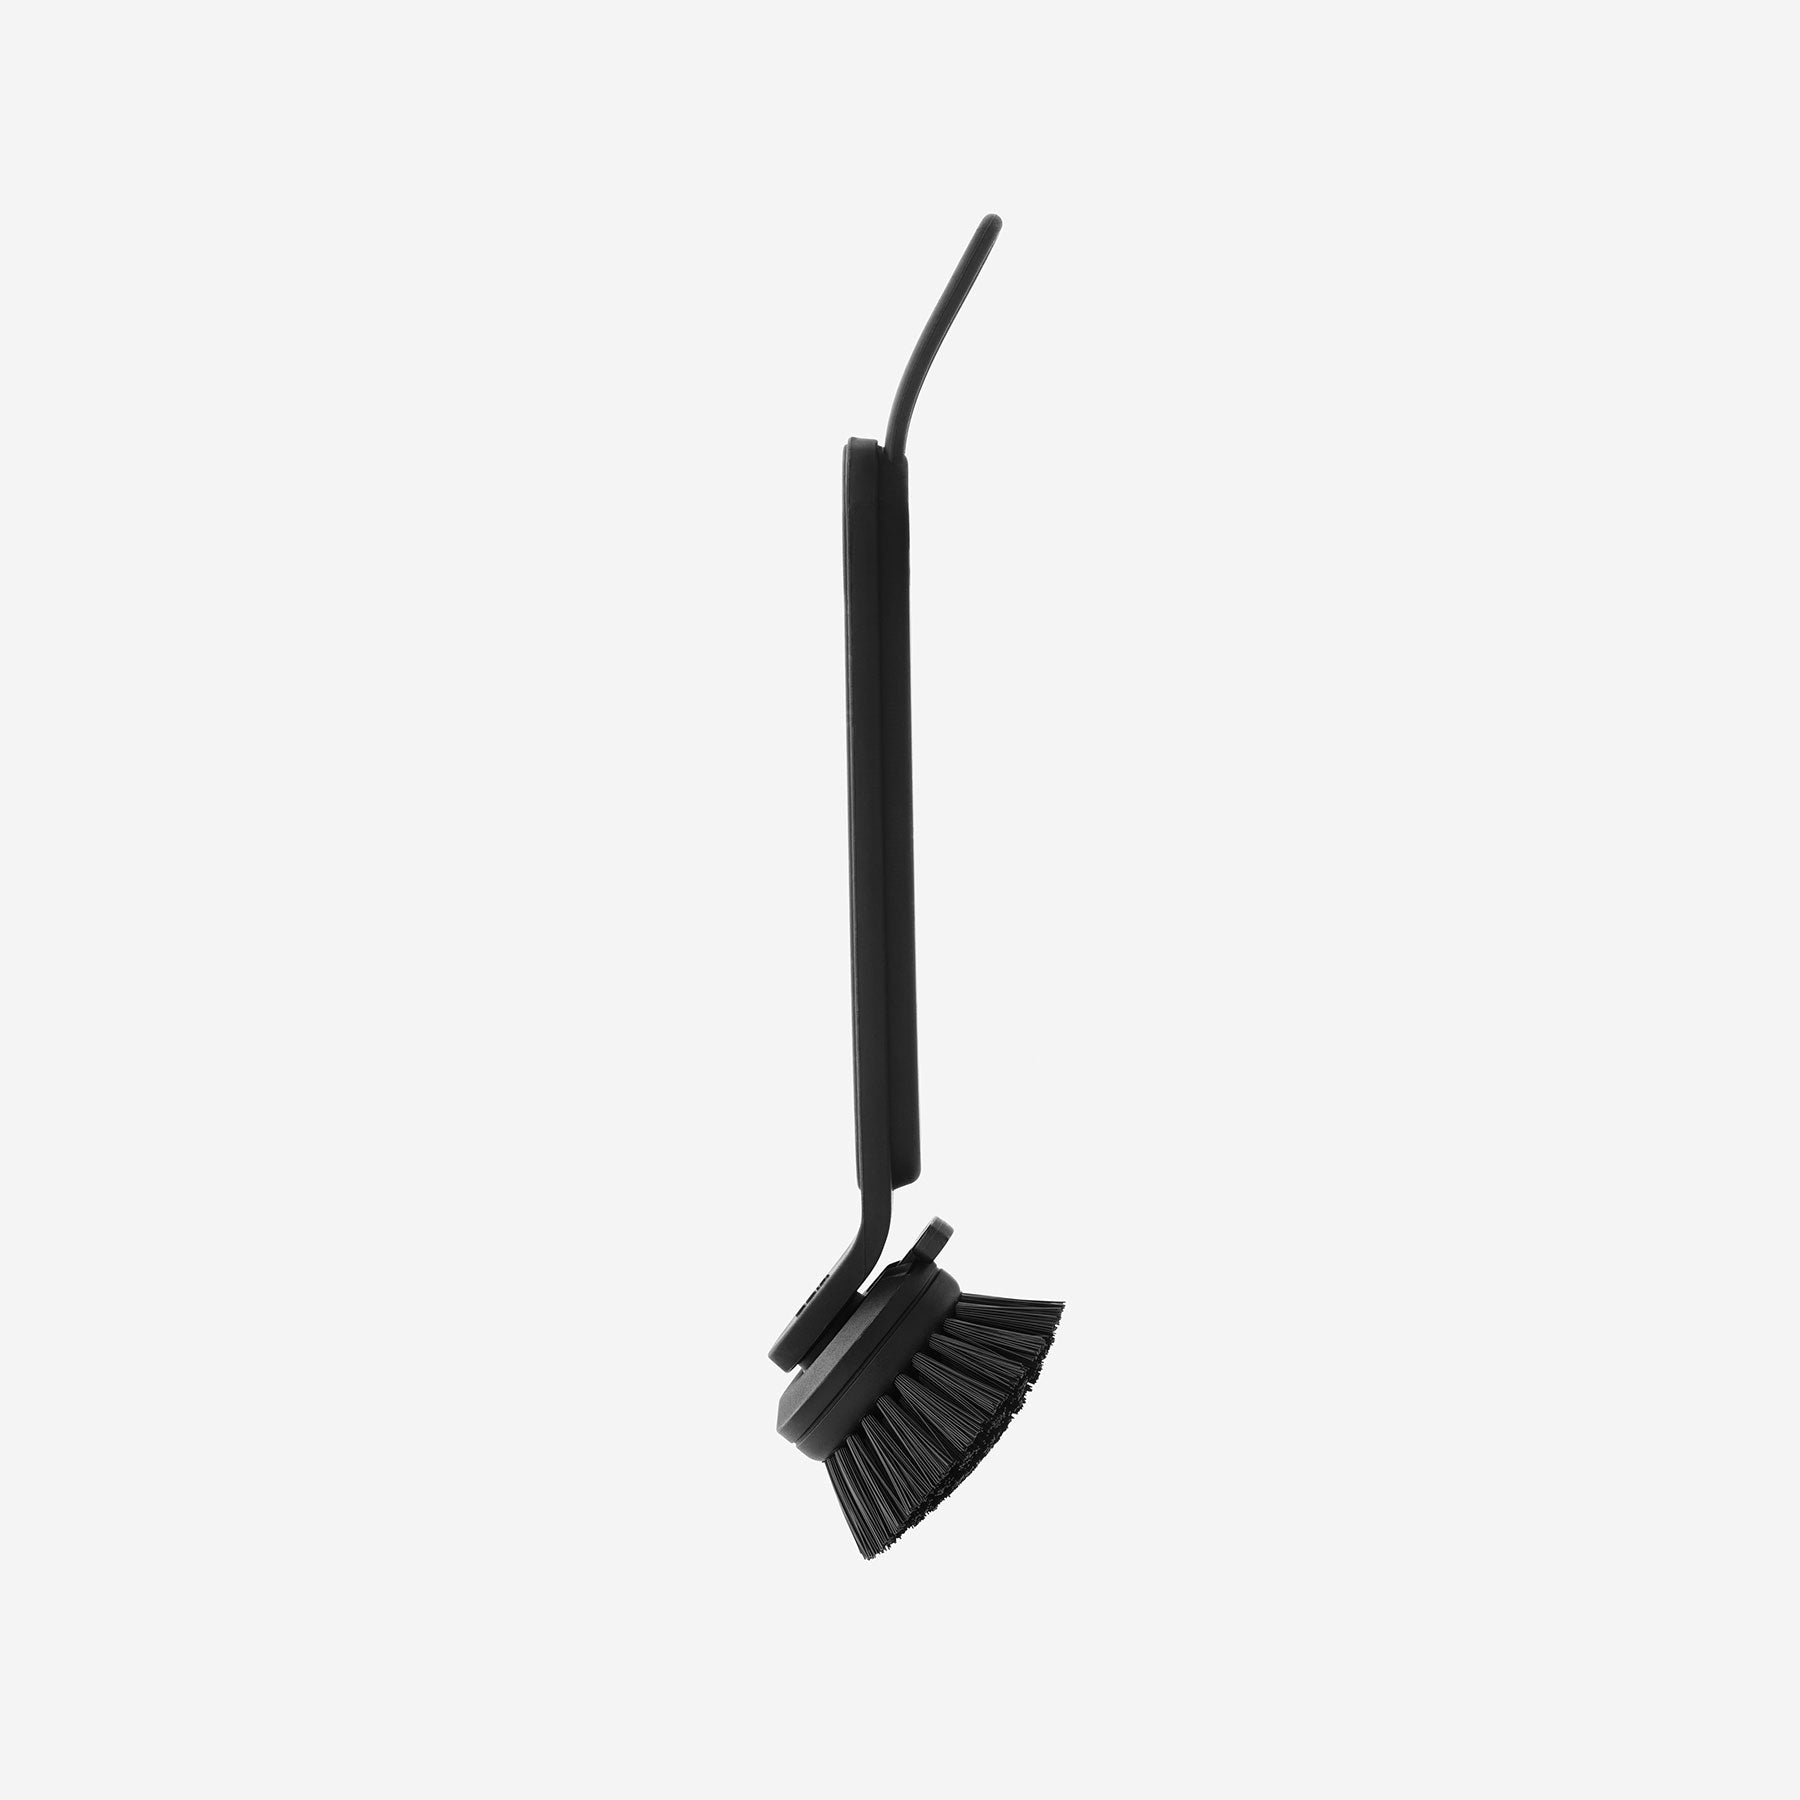 Vipp280 Dishwashing brush - Black